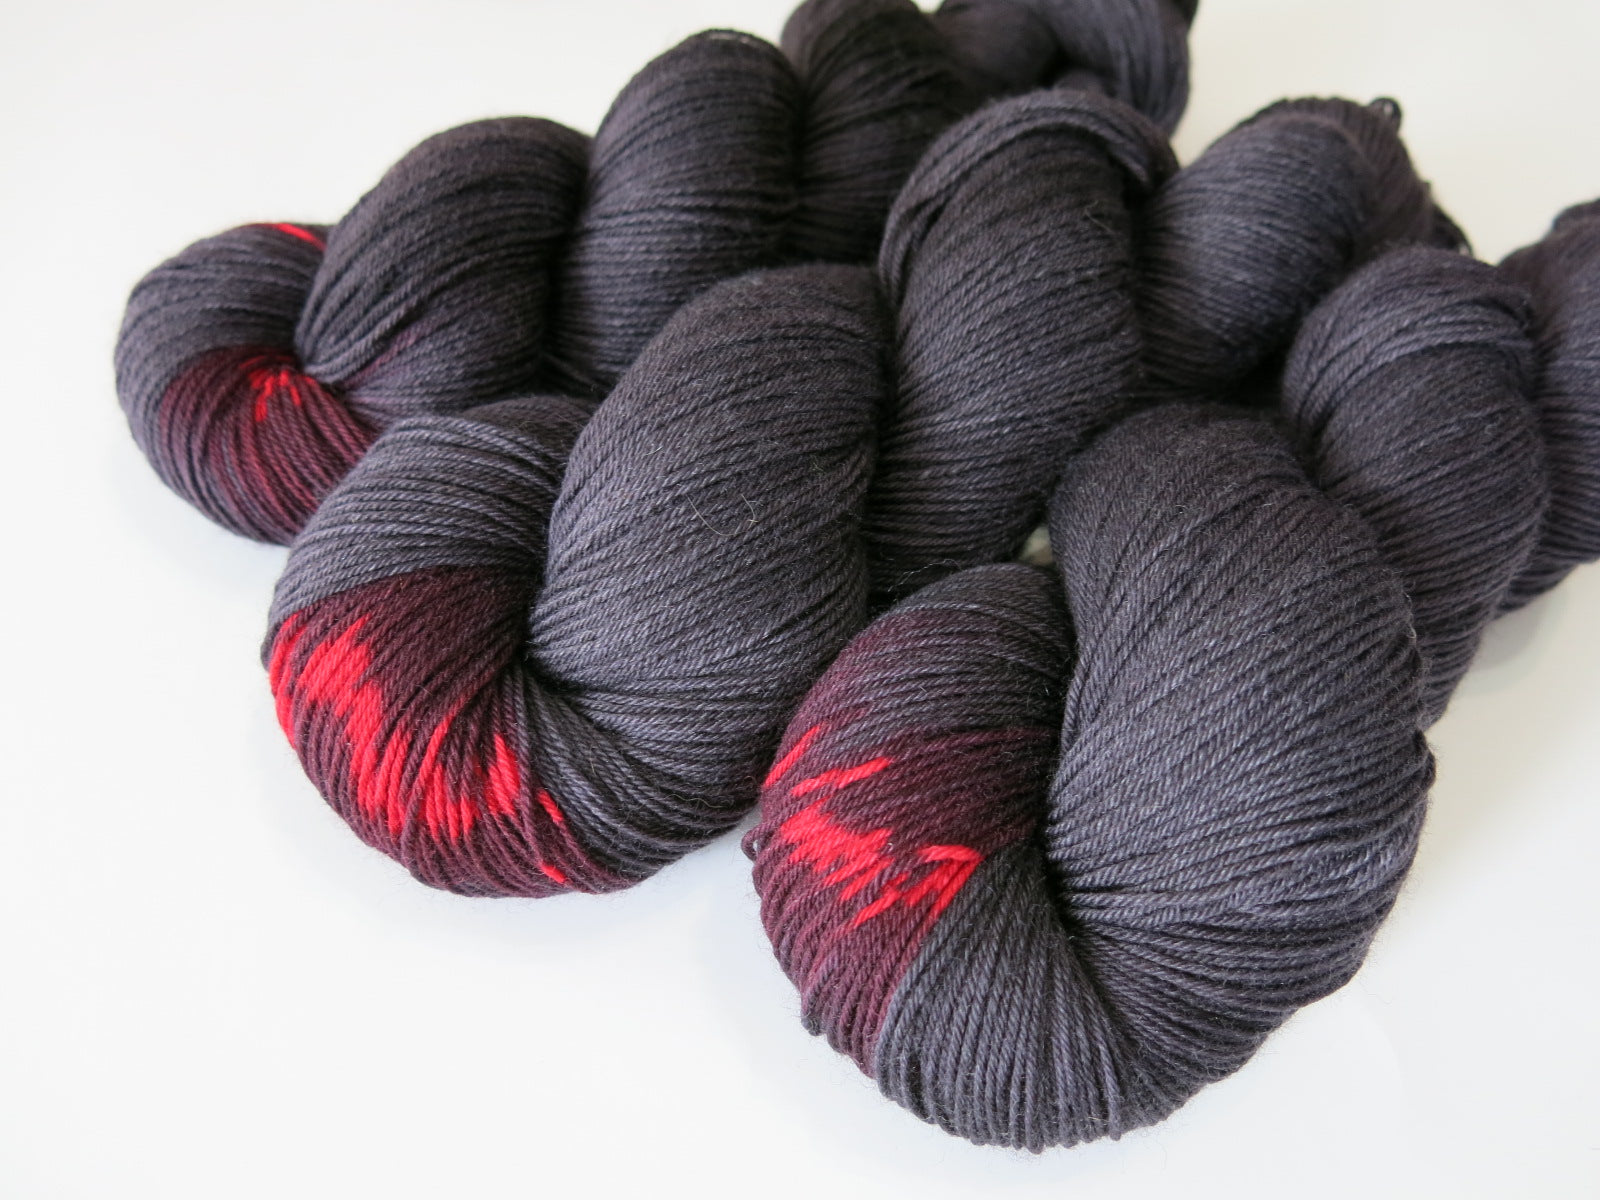 black sock yarn skein with a pop of red colour inspired by black widow spiders